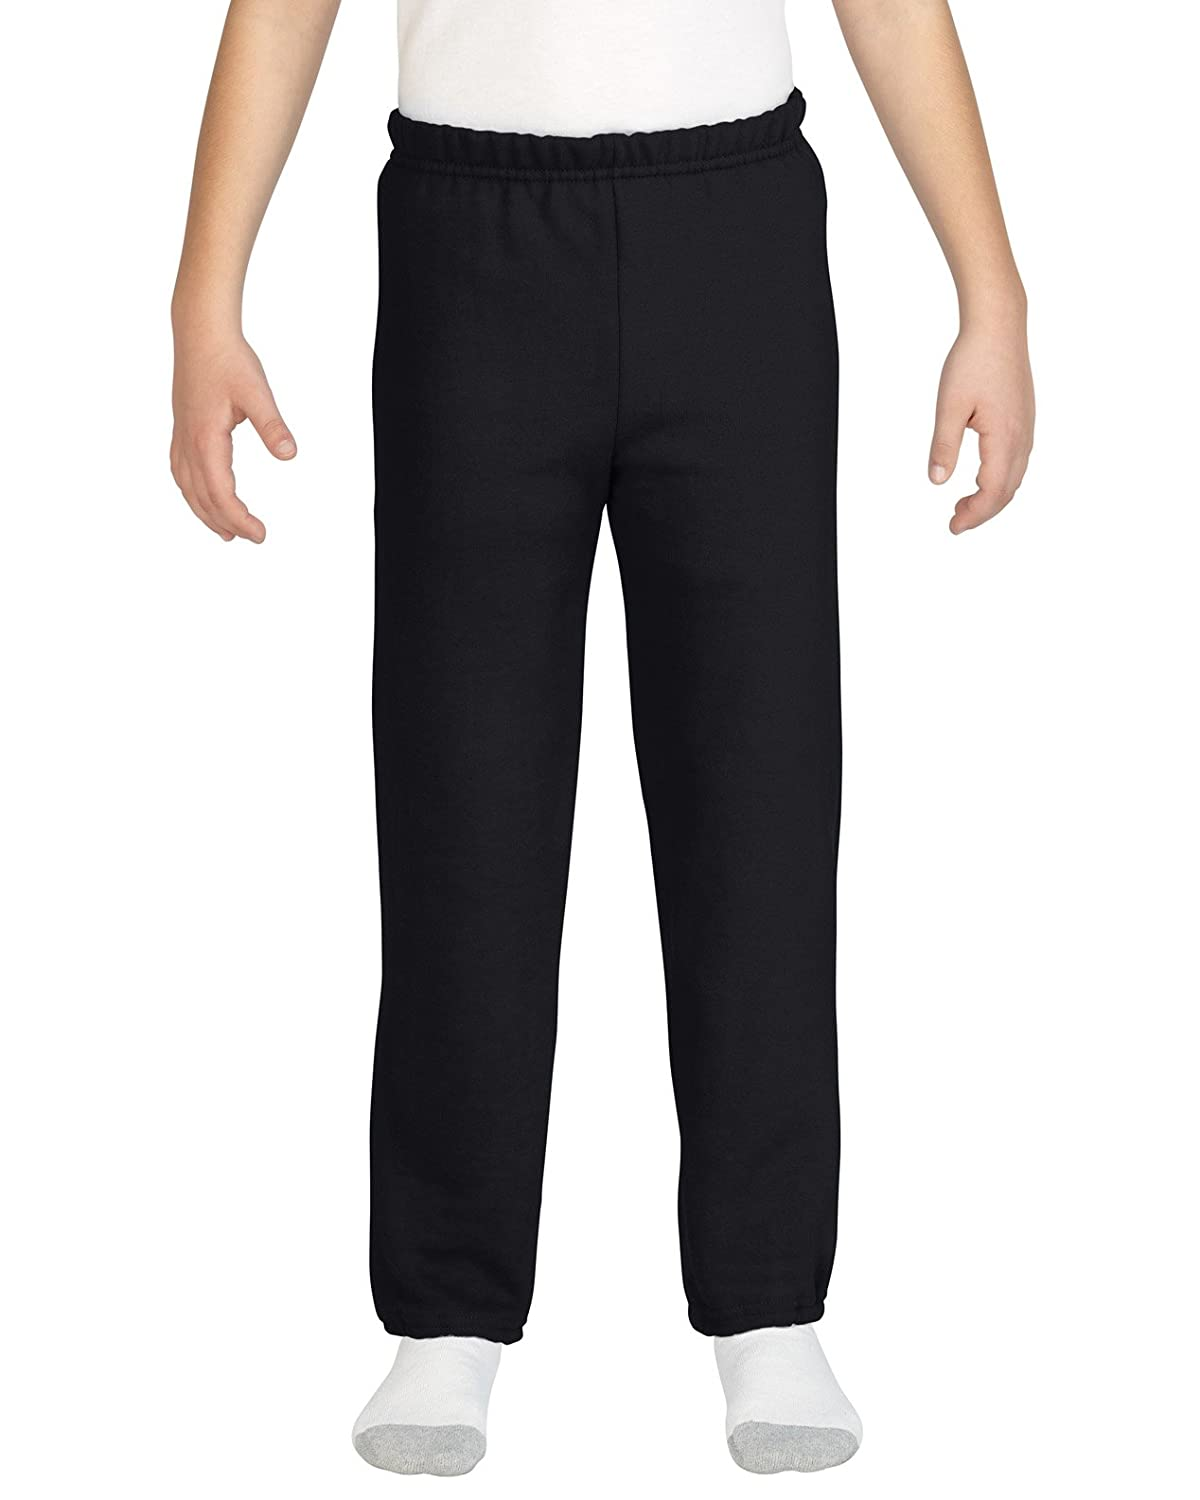 Gildan Kids' Elastic Bottom Youth Sweatpants